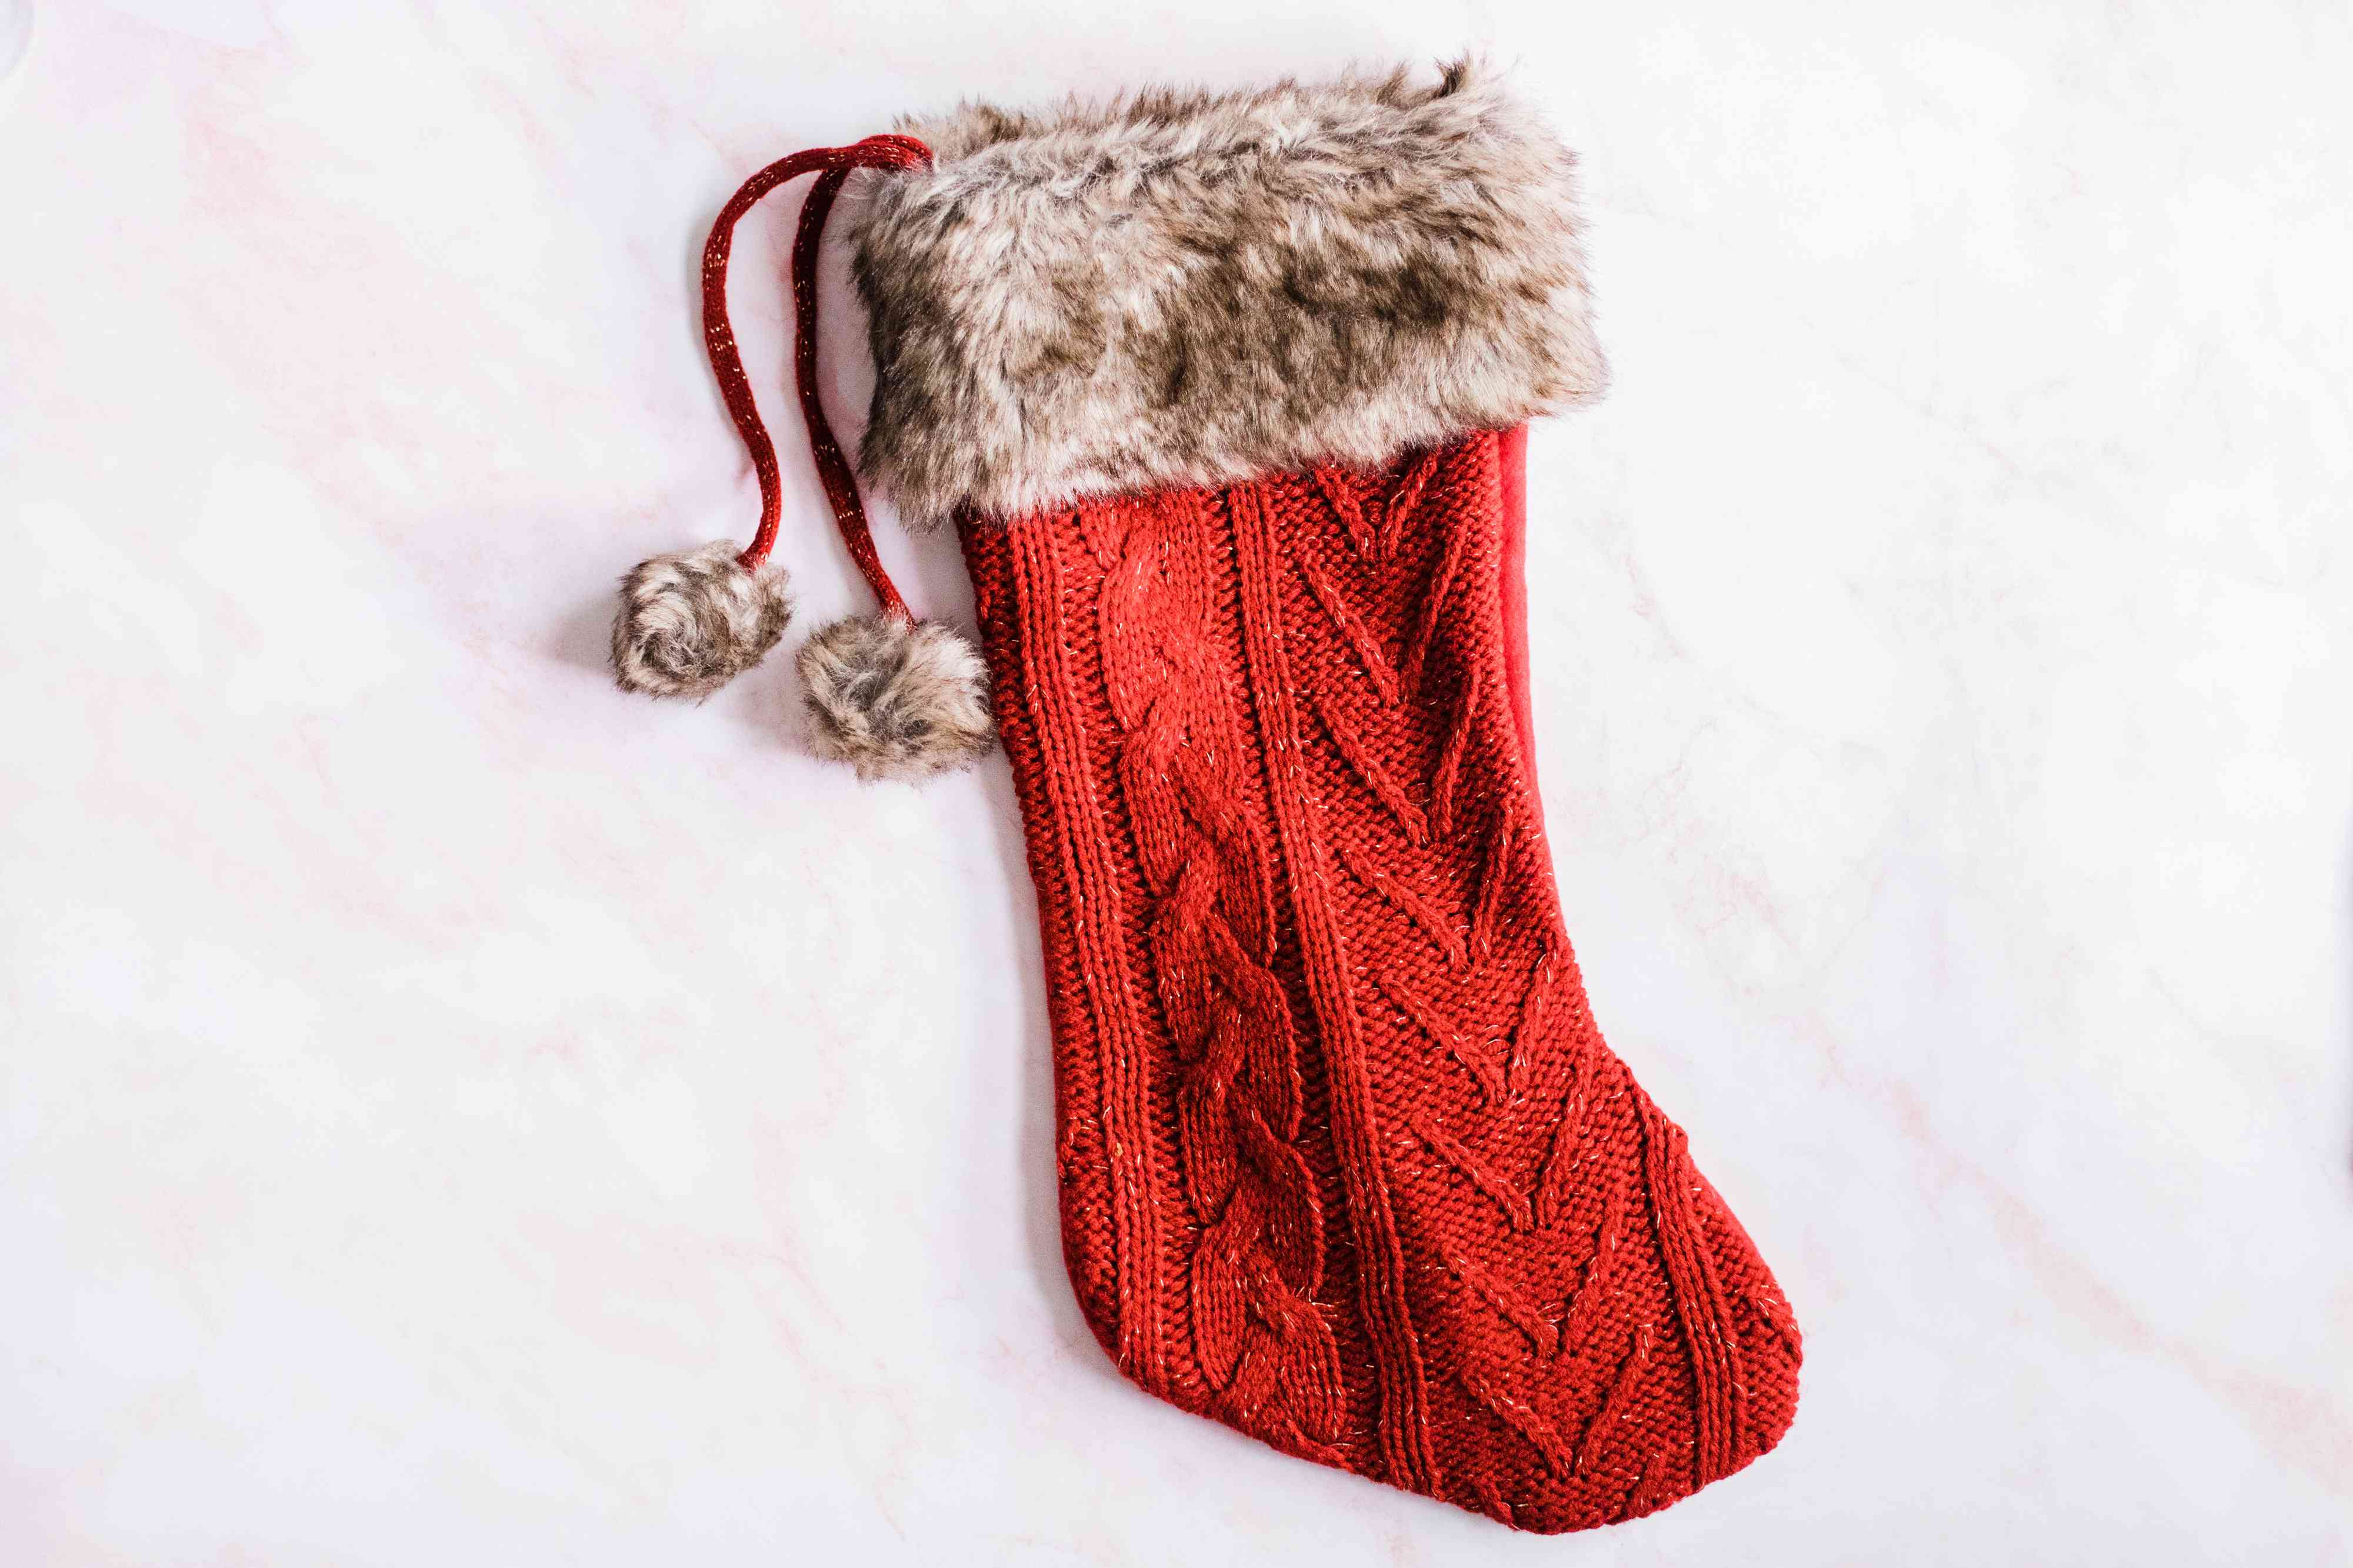 Red Christmas stocking on white surface